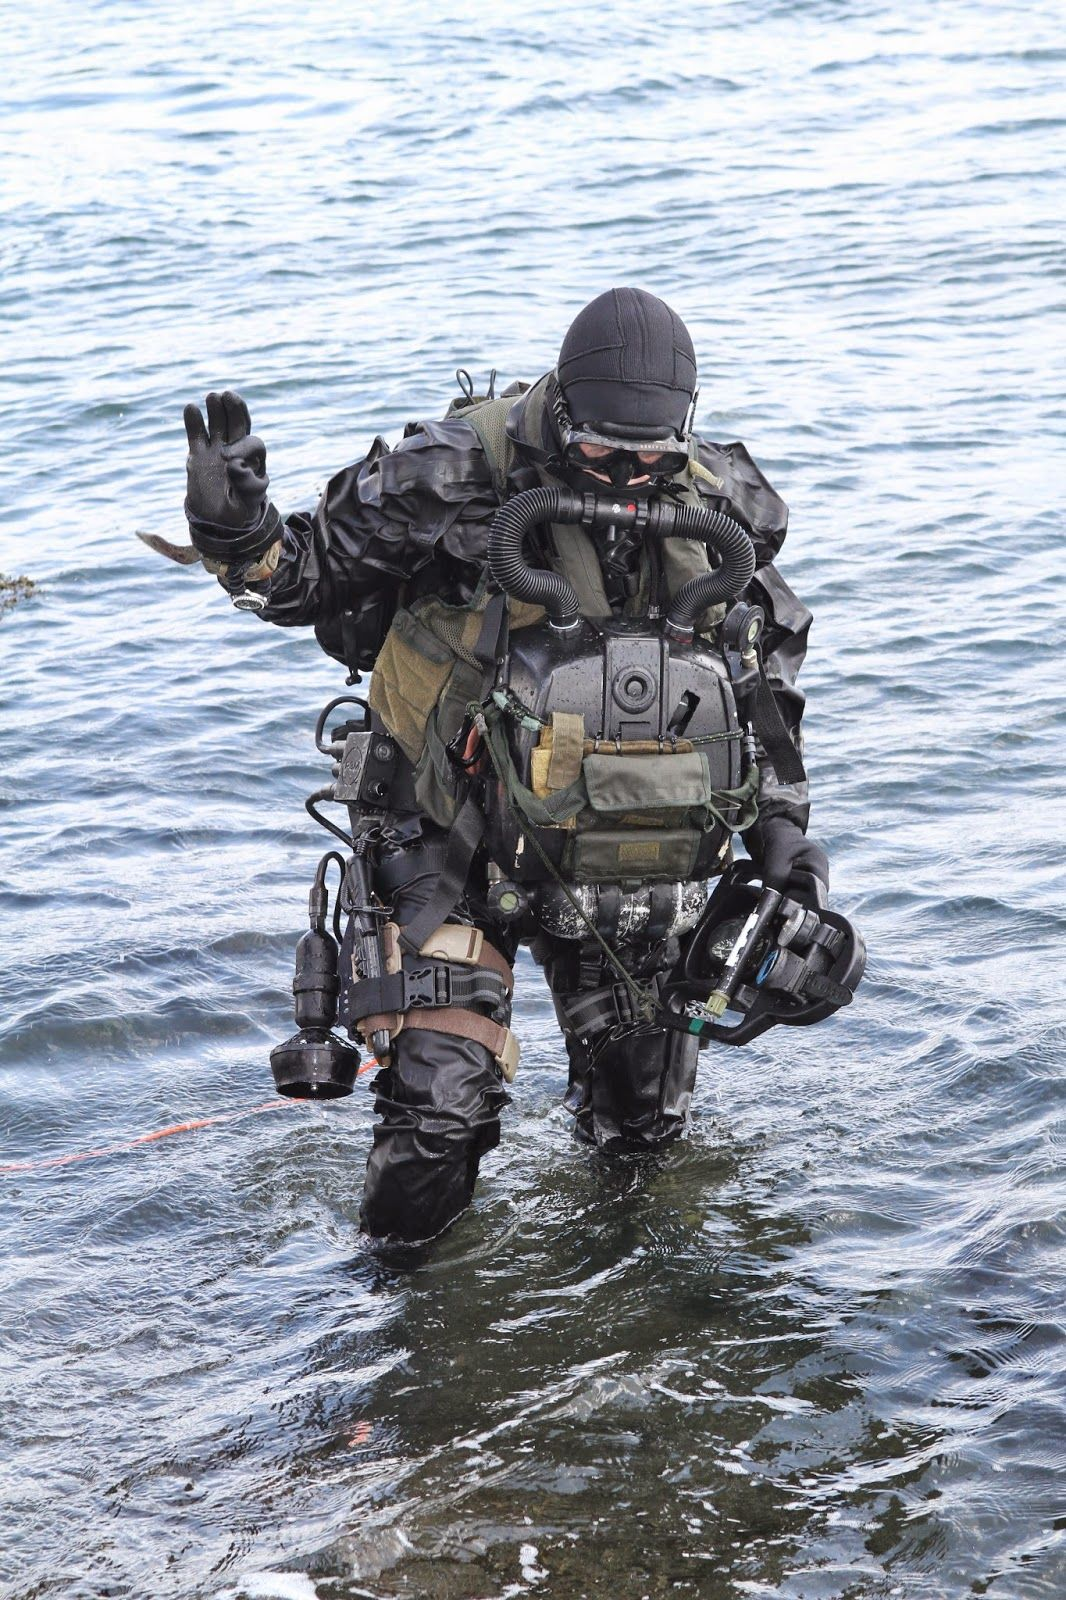 Military special forces gear - Netherlands Special Forces The Netherlands Special Forces Include Highly Trained Combat Swimmer